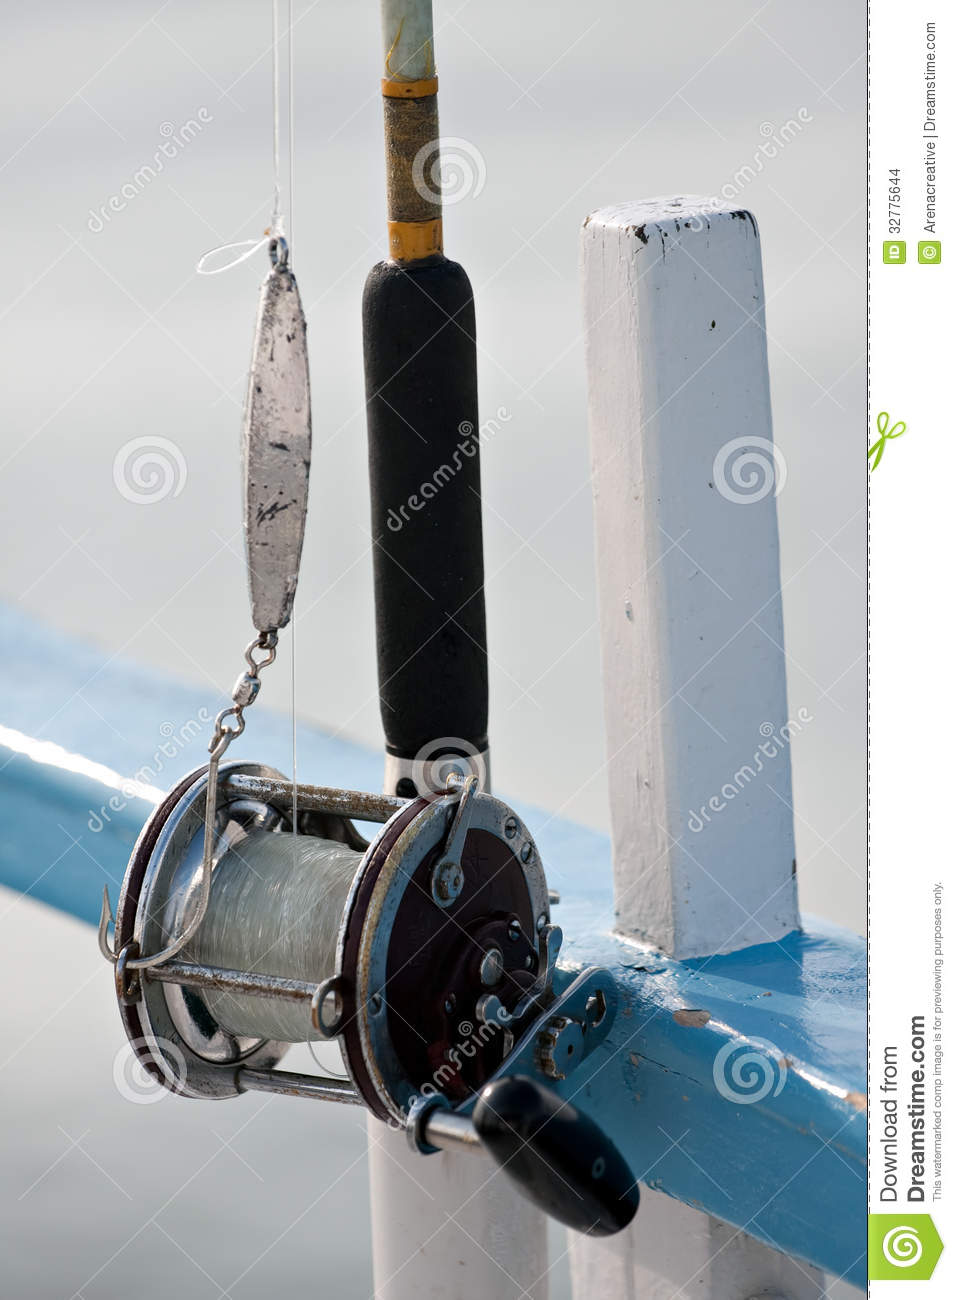 Deep Sea Fishing Reel Stock Images - Image: 32775644